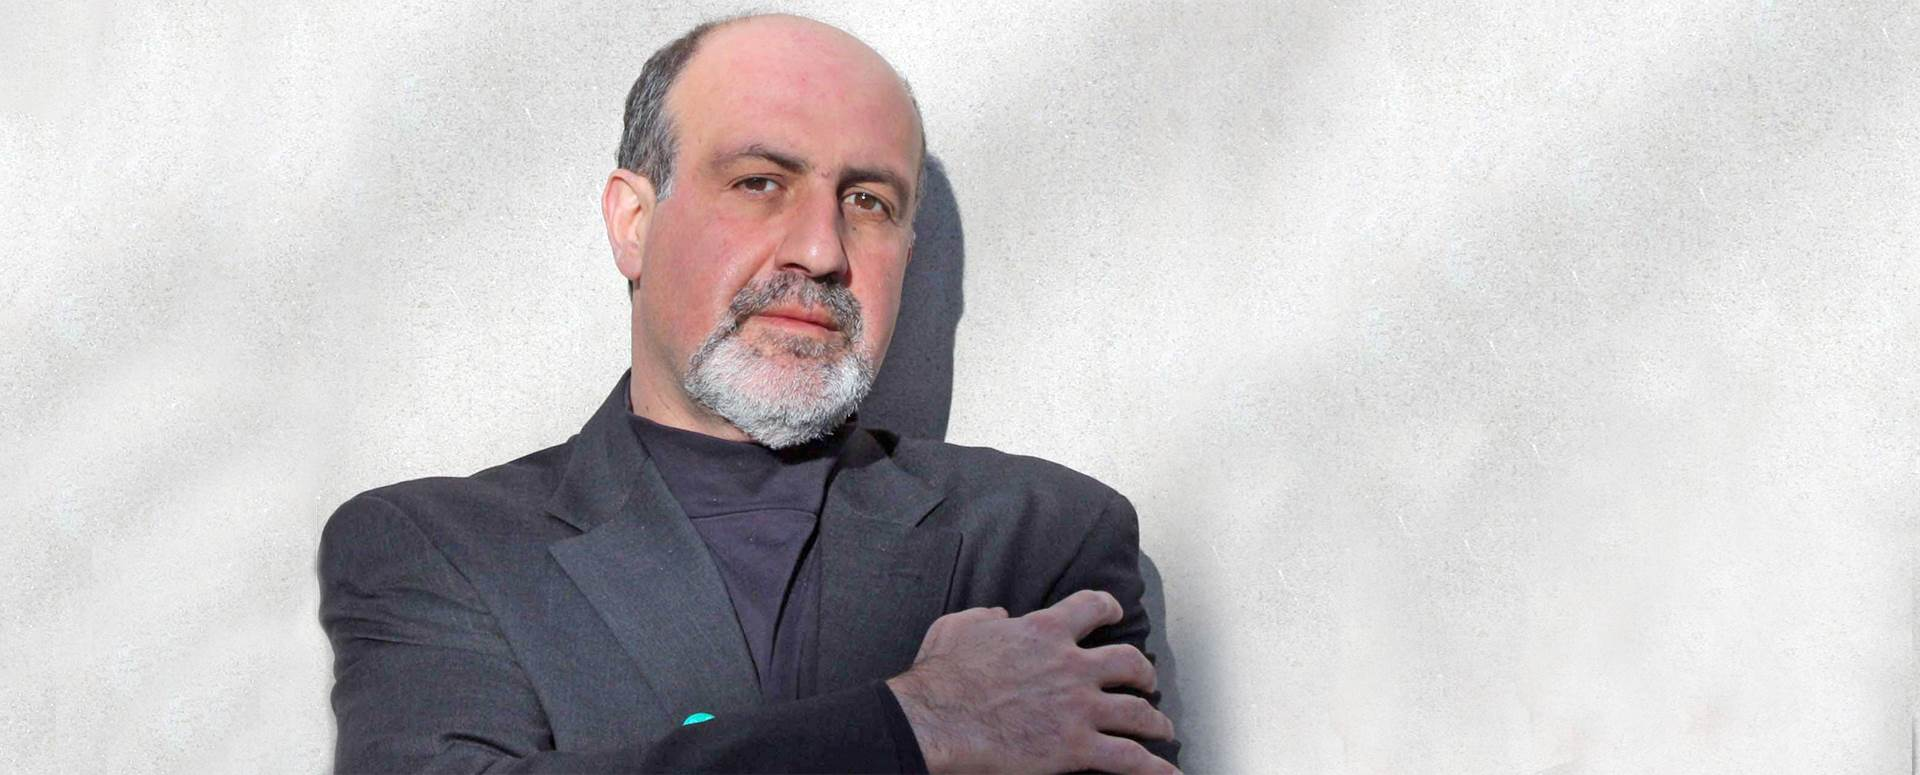 Book Nassim Nicholas Taleb for Speaking, Events and Appearances